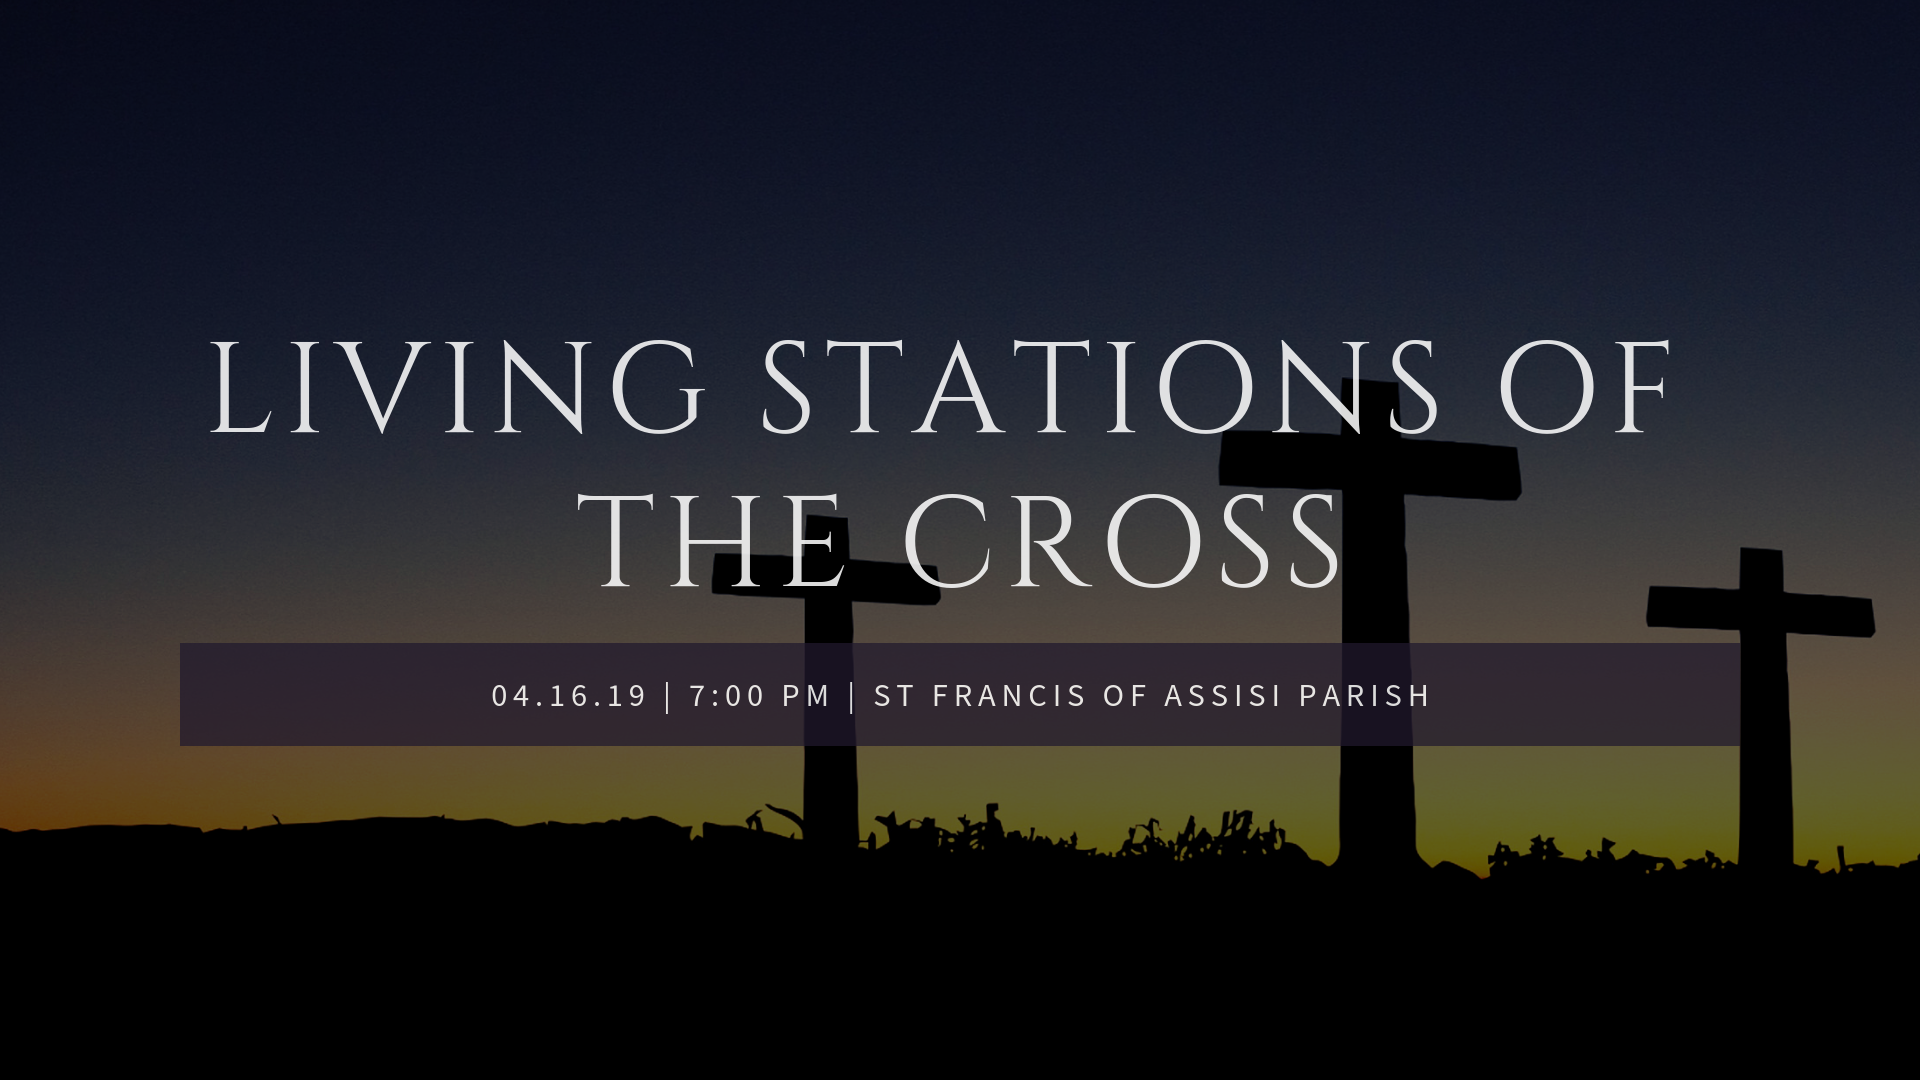 living stations of the cross.png